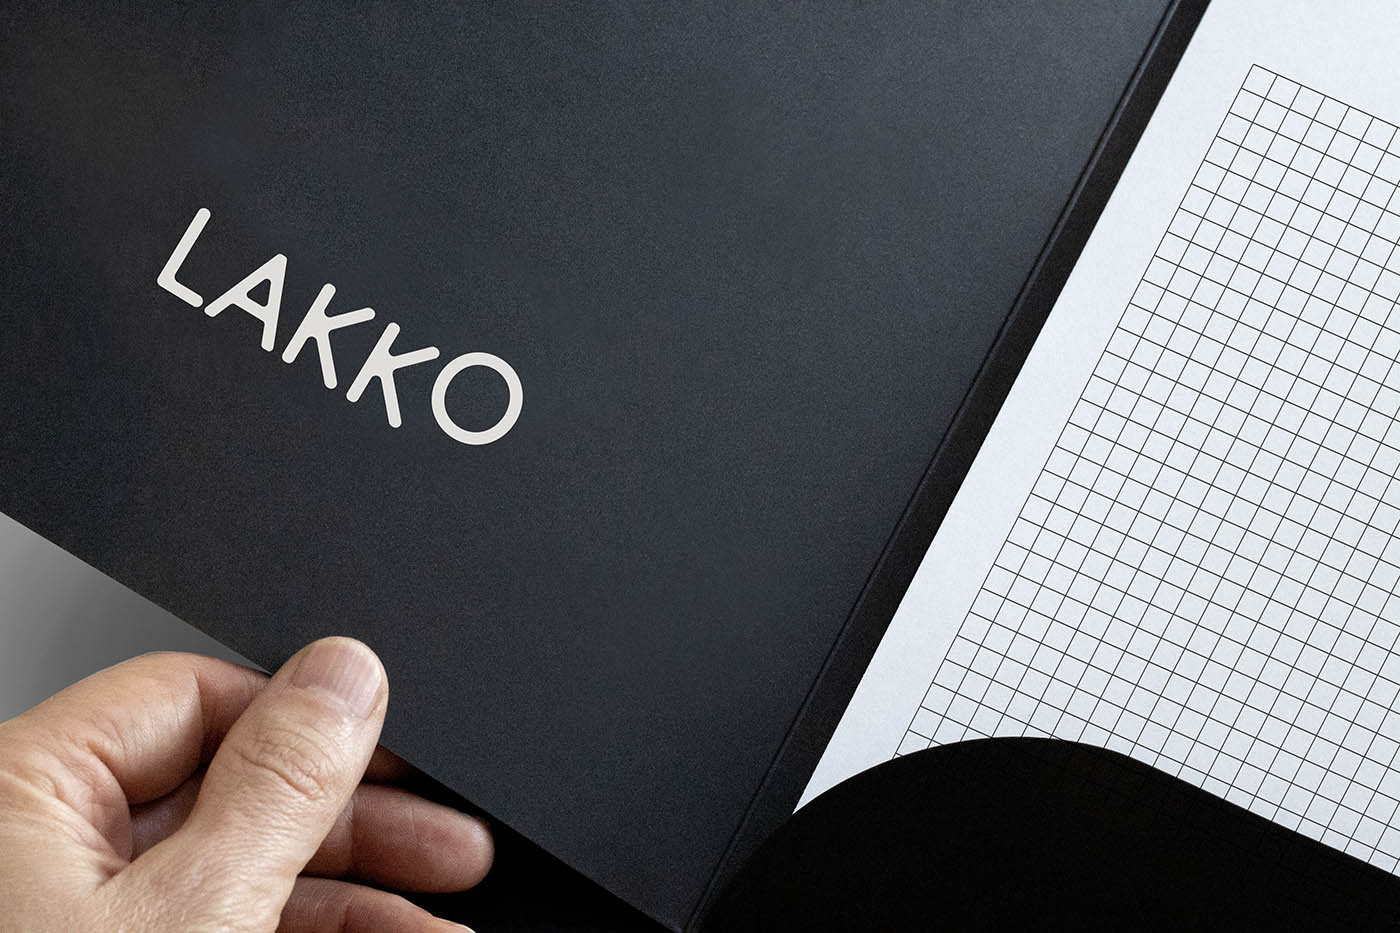 lakko_folder_logo_visual_identity_design.jpg